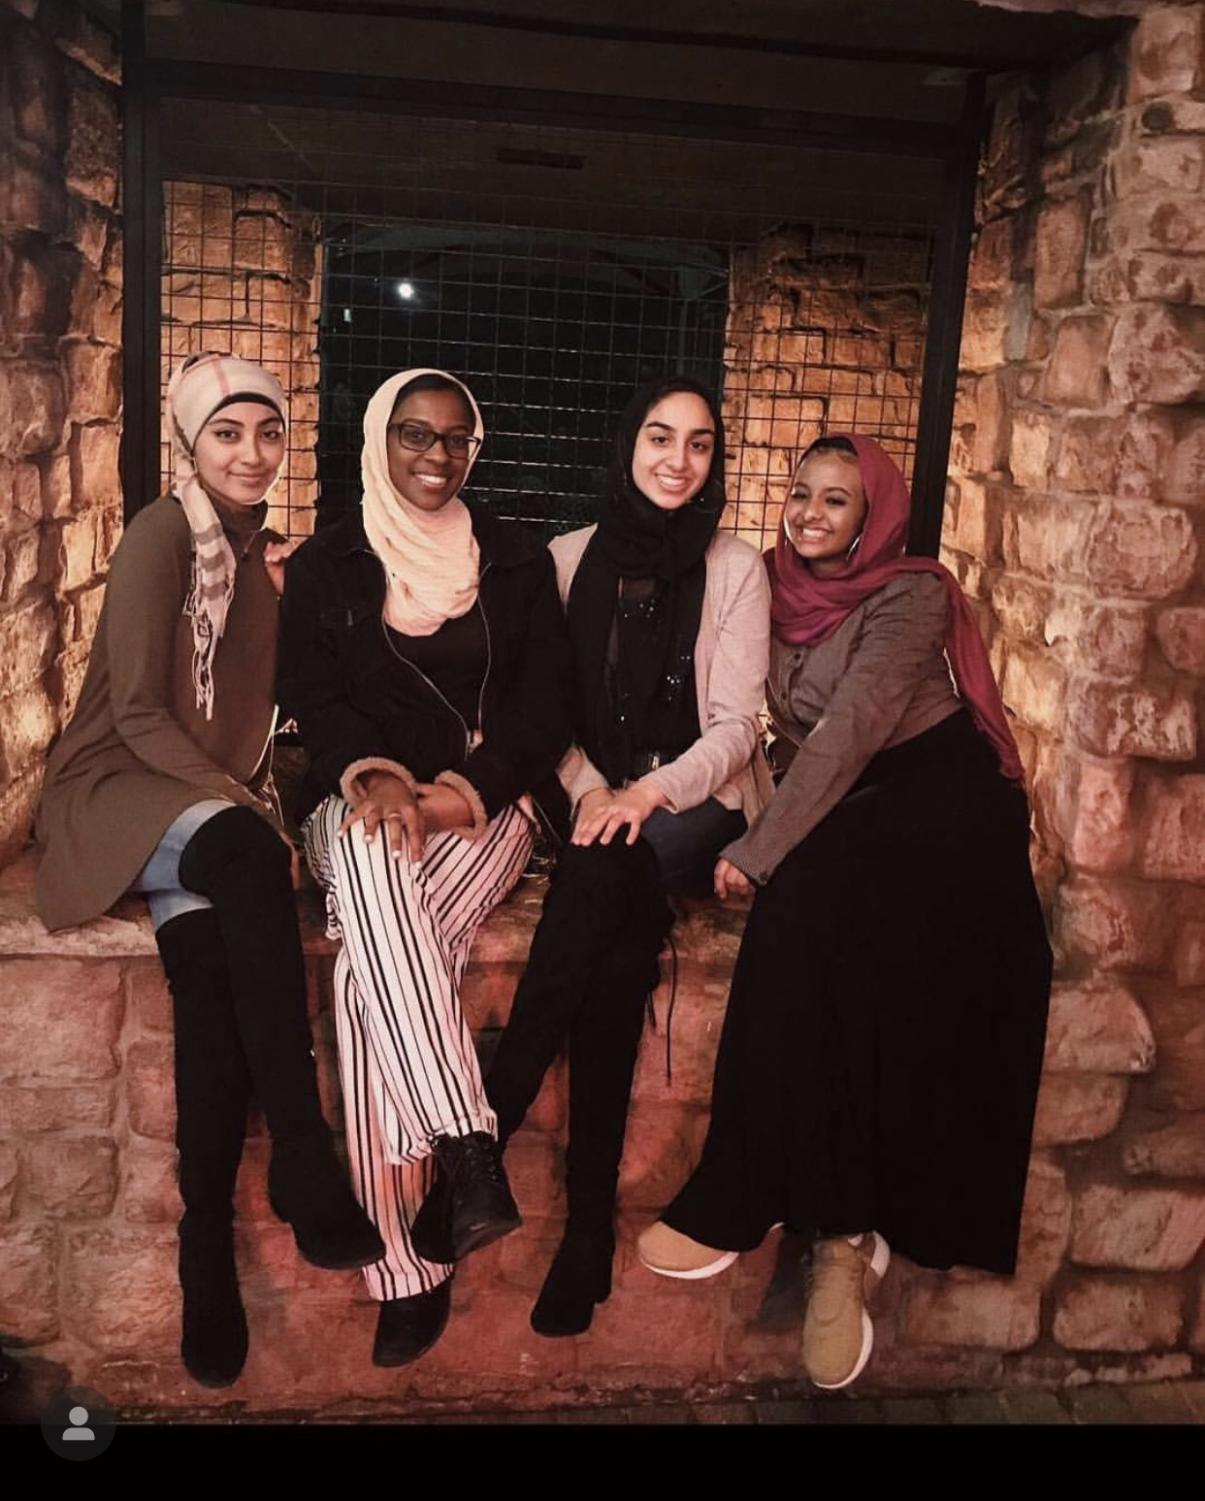 Senior Sana Khan wears her hijab proudly with her friends, Khusna Rachman, Islah Abdulmalek and Lena Elamin, despite the curious questions that she gets daily.